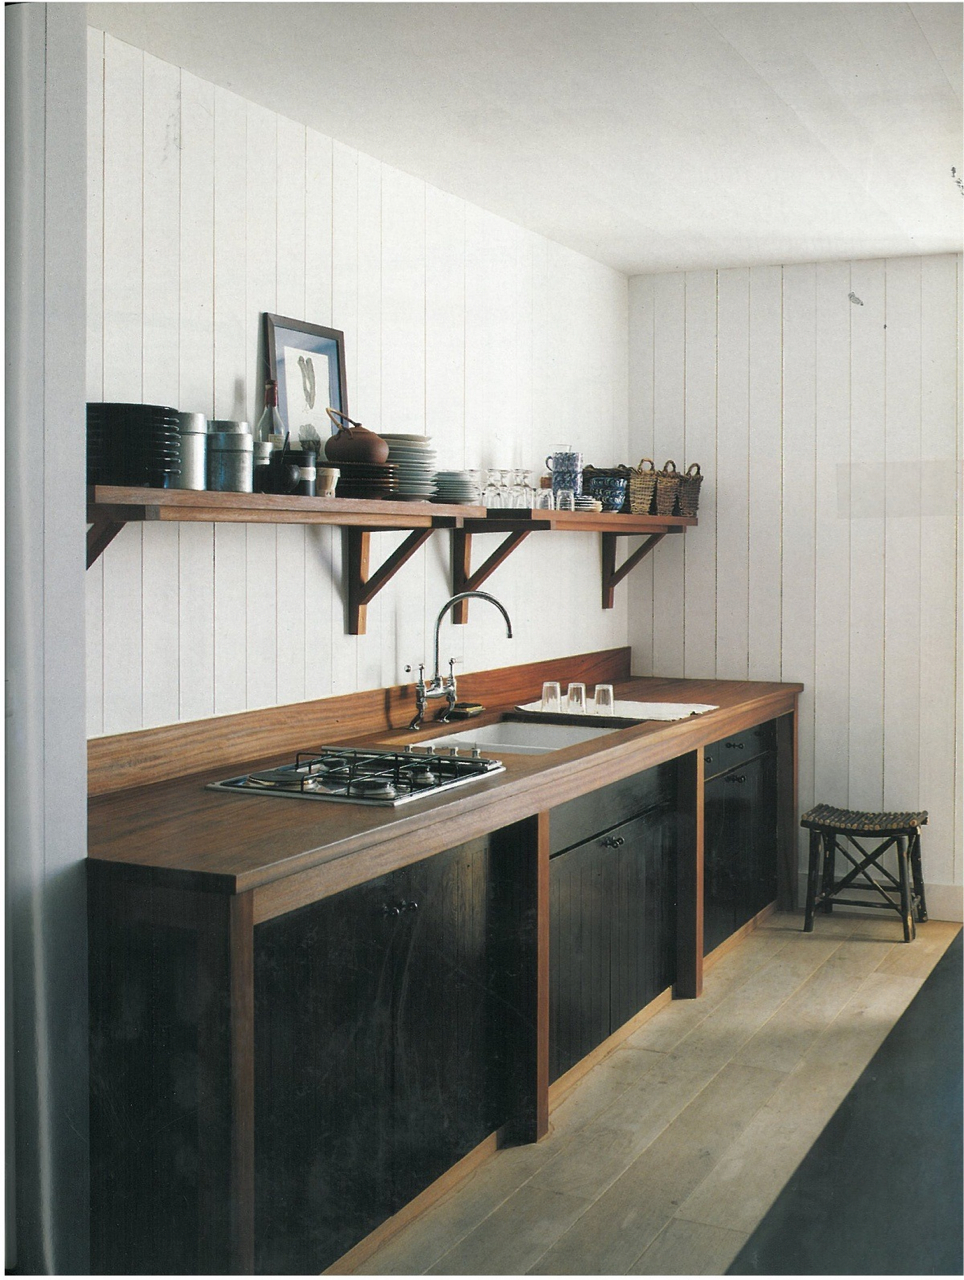 Exactly this kitchen.